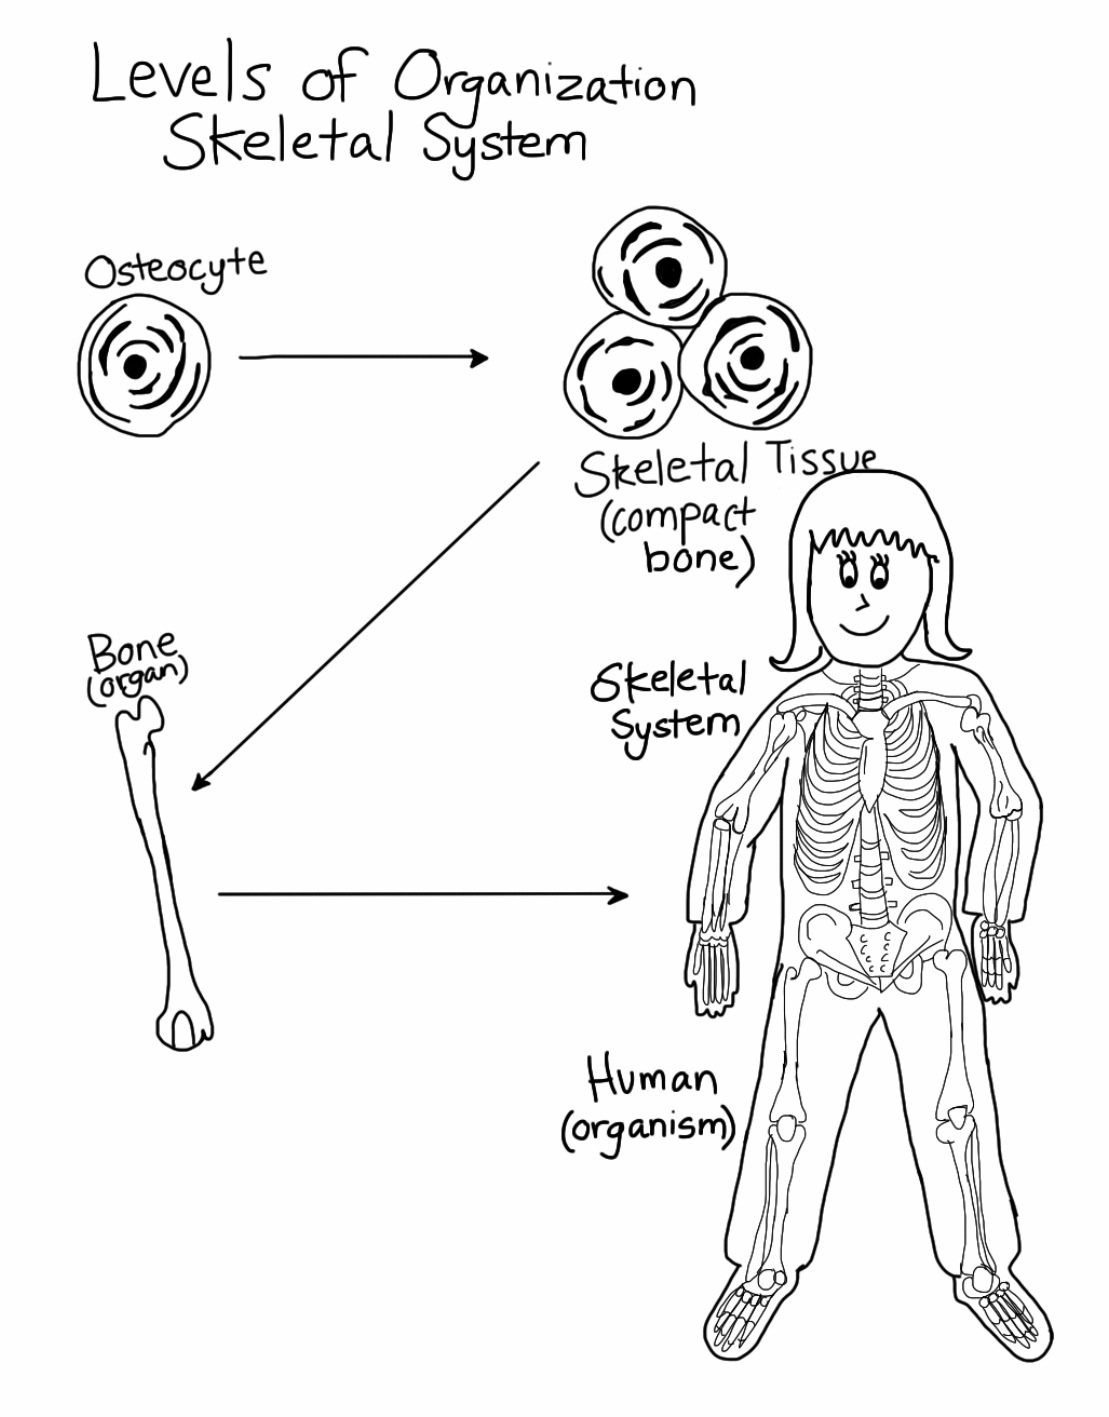 Skeletal System Levels Of Organization